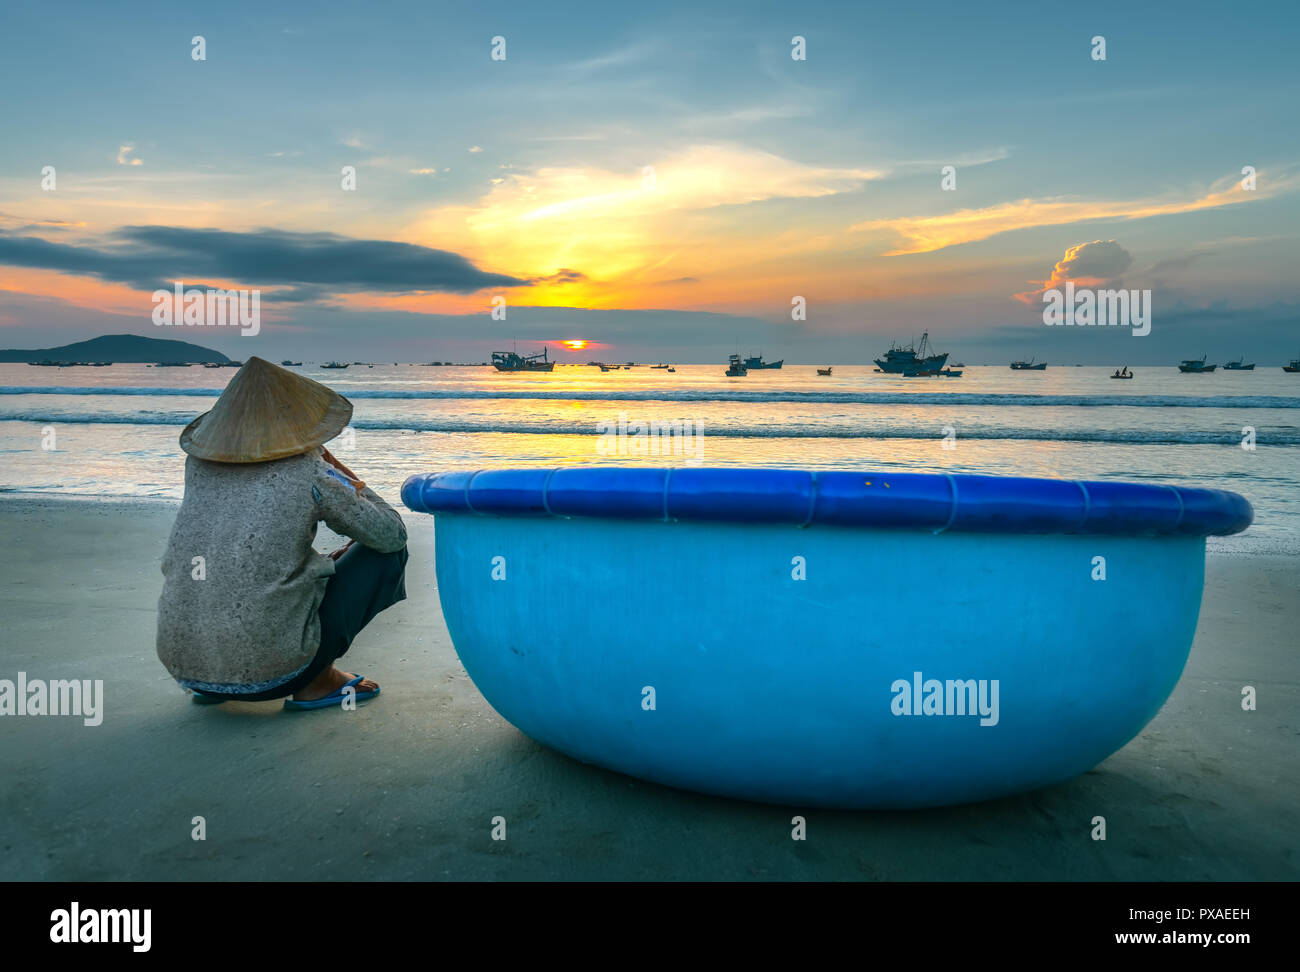 Old fisherman seated on a beautiful beach at dawn next to boat looking relatives fishing shore hoping for bumper harvest - Stock Image